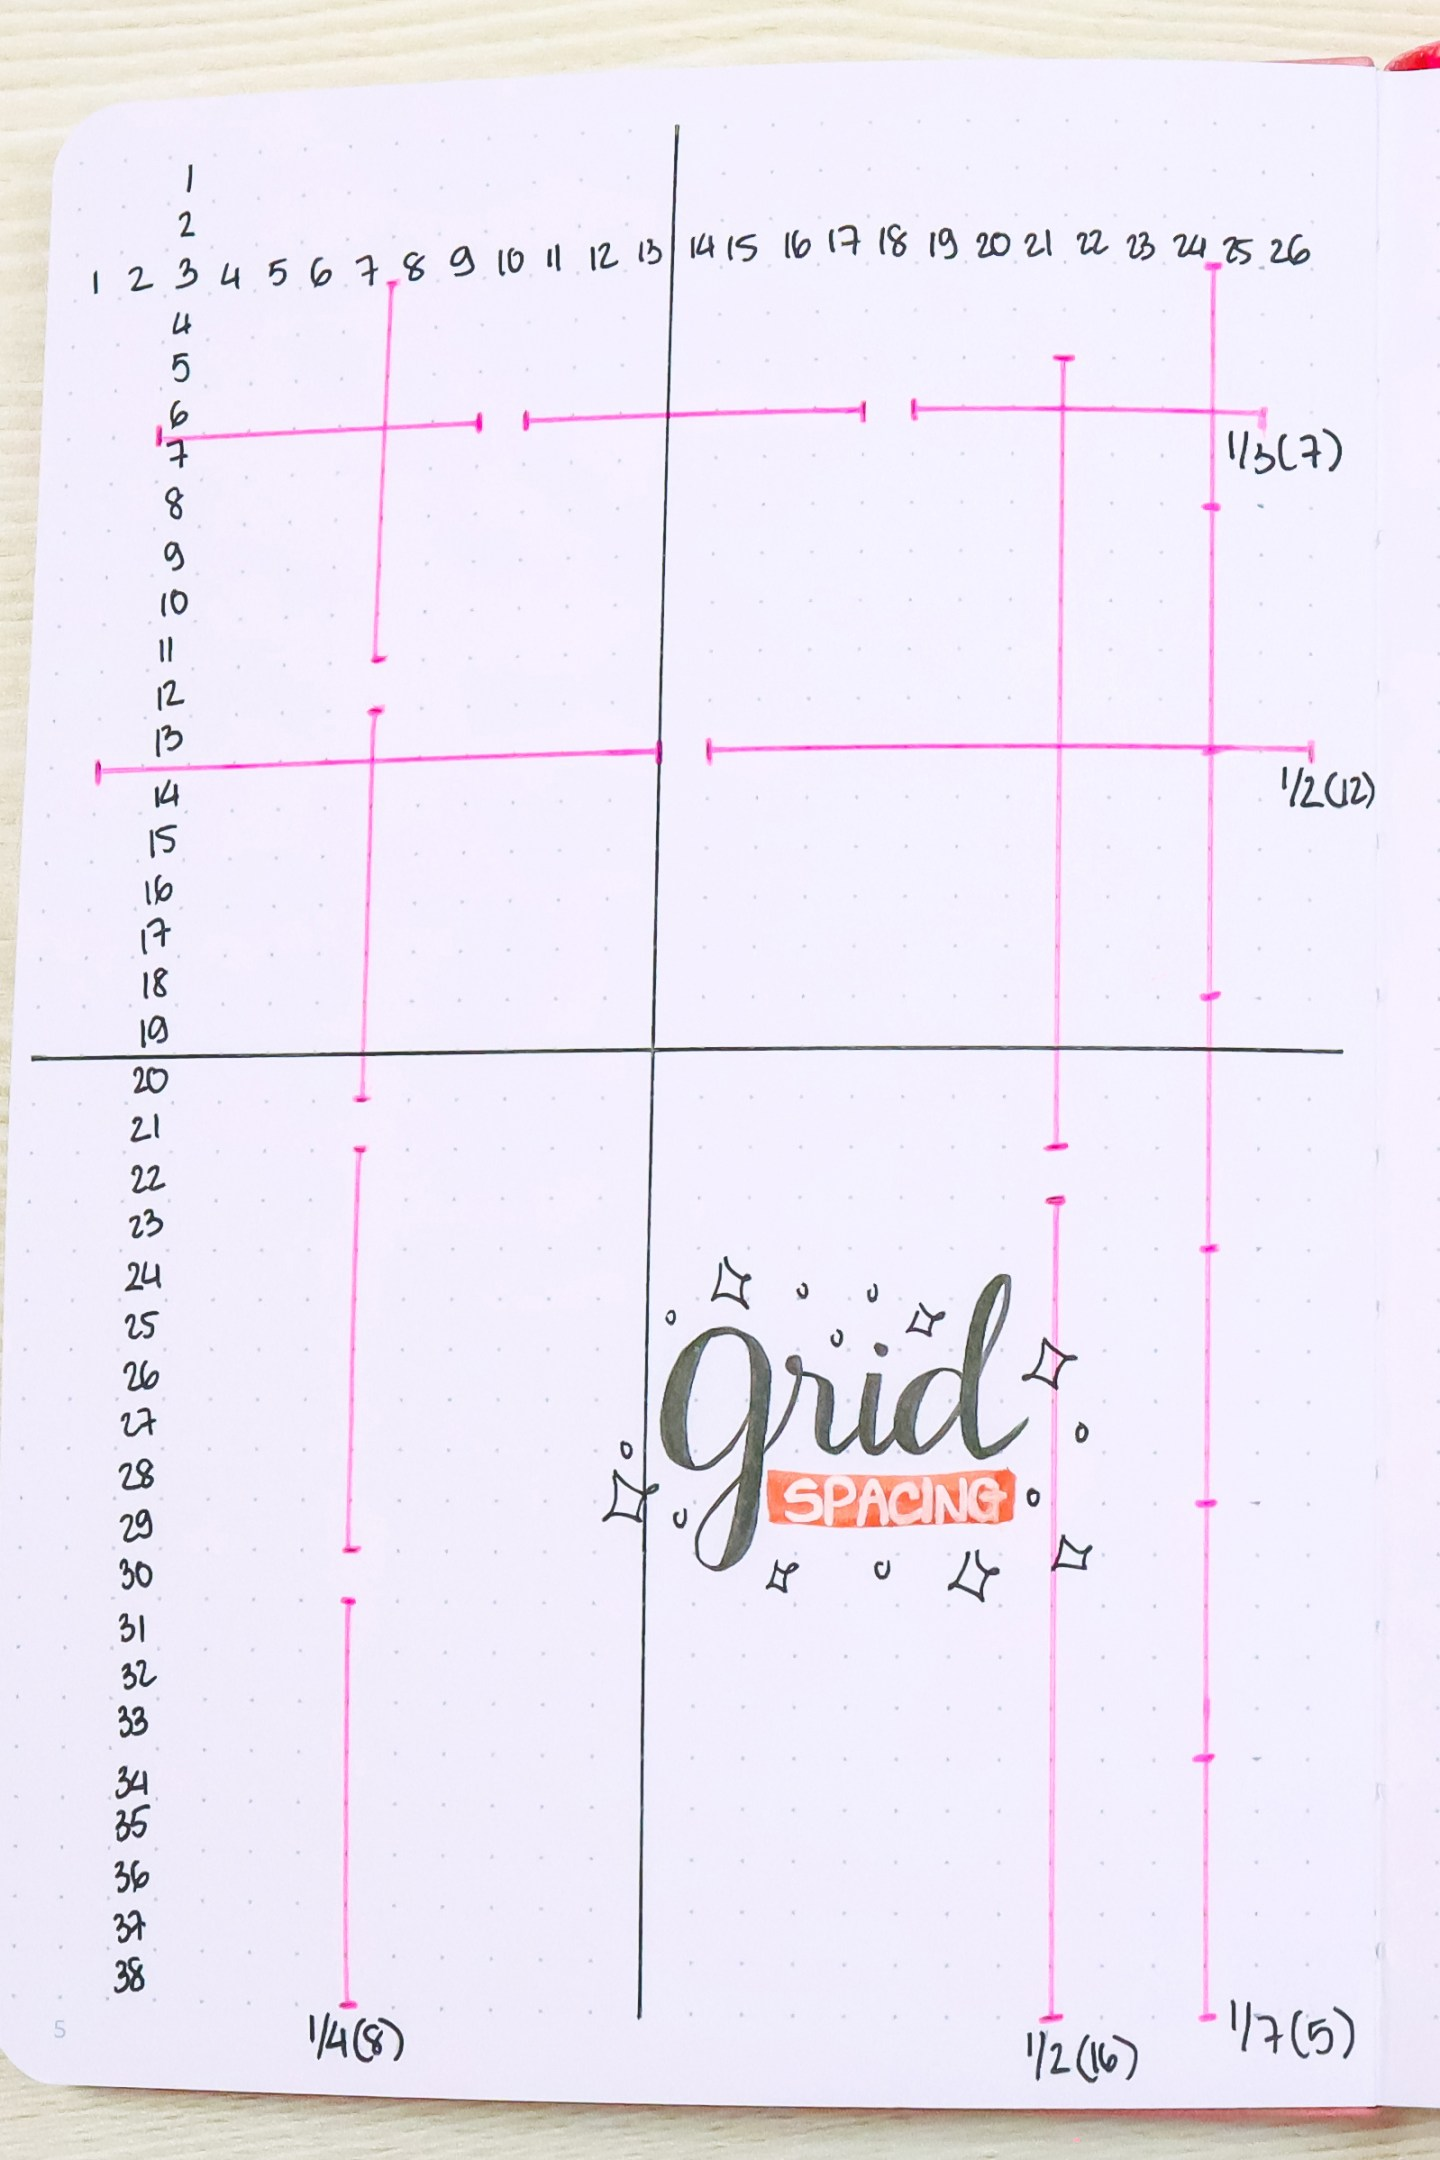 Bullet Journal Weekly Layouts - grid spacing